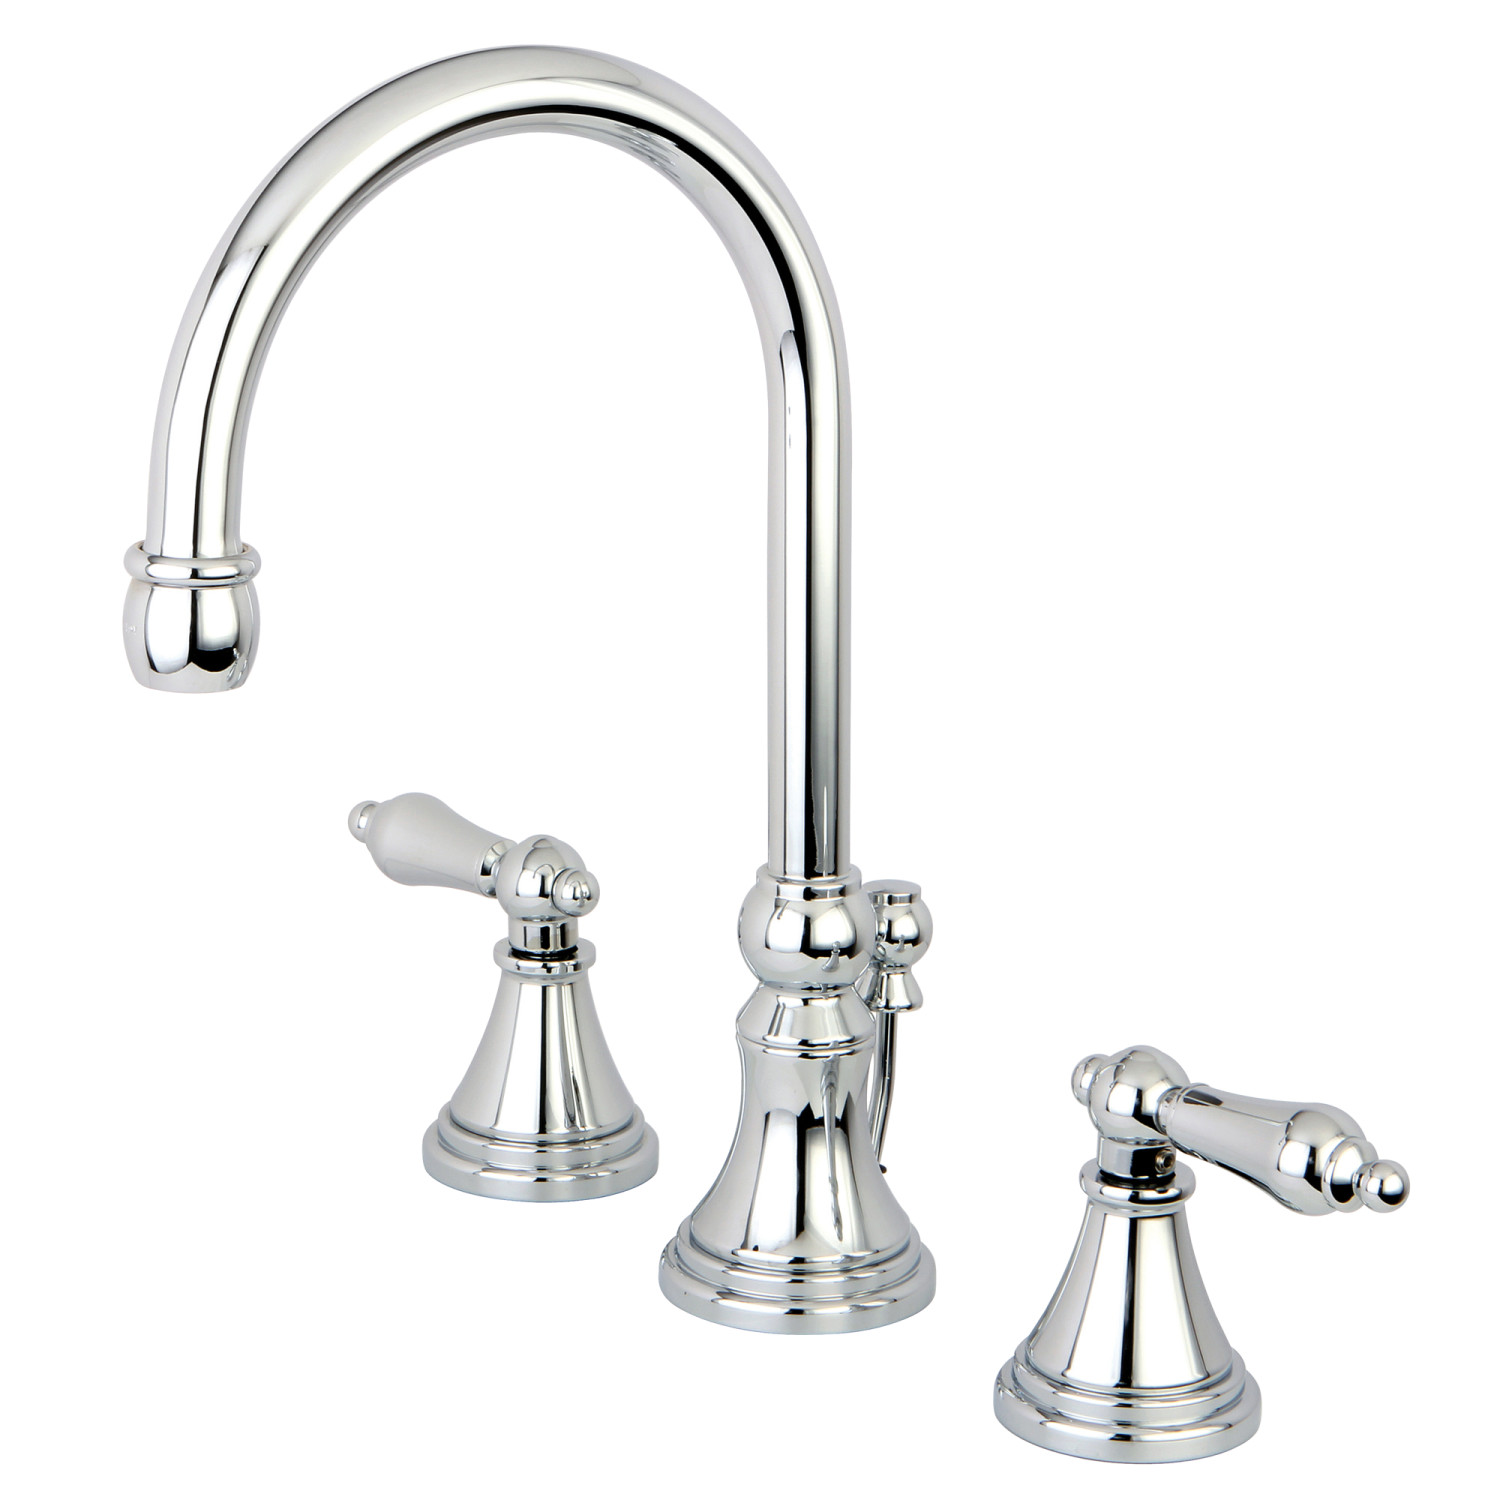 Traditional 2-Handle 3-Hole Deck Mounted Widespread Bathroom Faucet Brass Pop-Up in Polished Chrome with 7 Finish Options